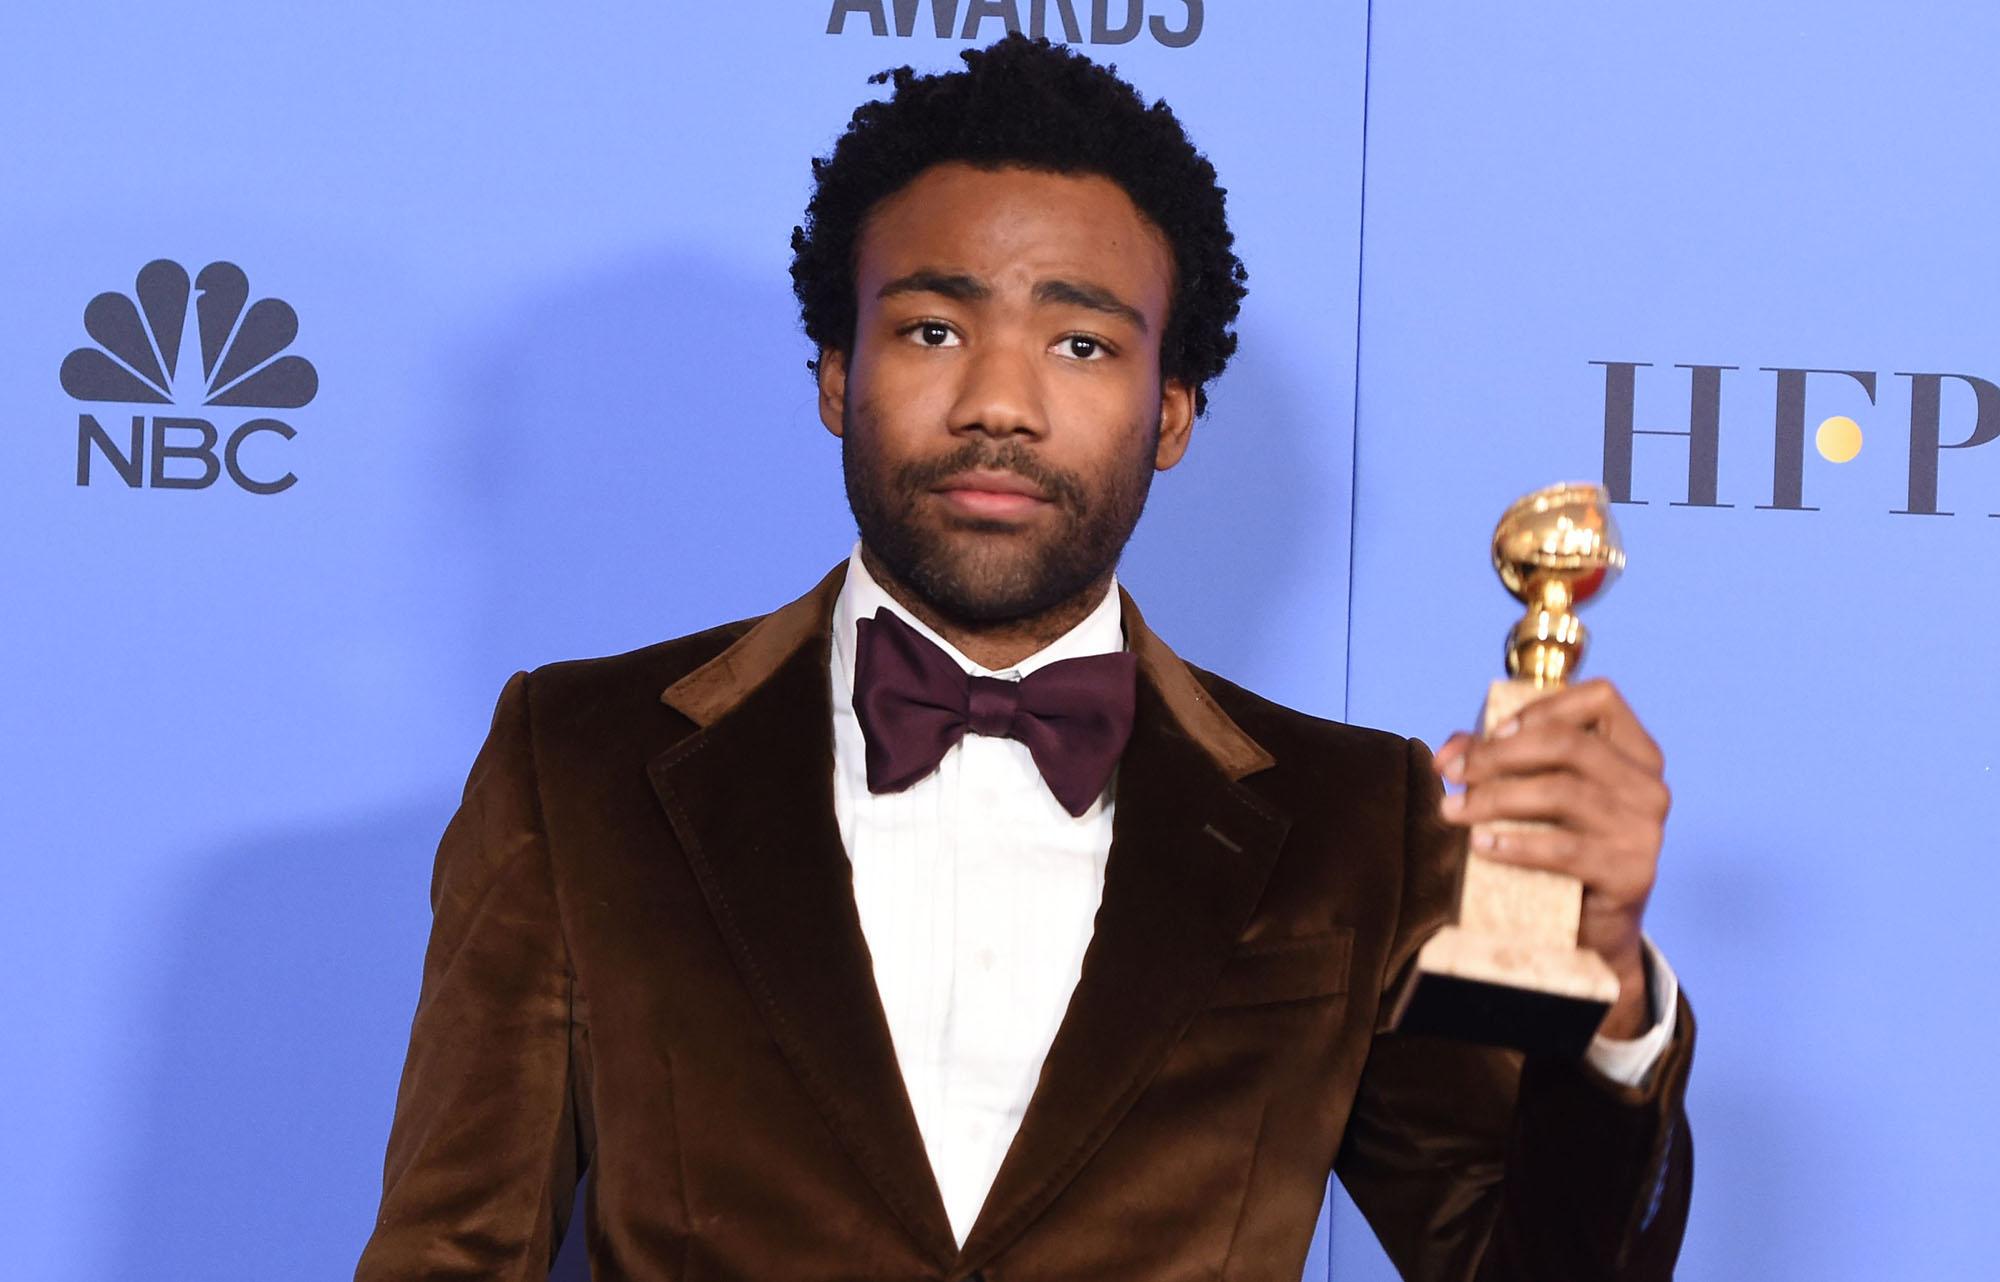 Actor Donald Glover poses with the award for Best Actor in a Television Series Comedy or Musical, in the press room at the 74th Annual Golden Globe Awards on January 8, 2017 in Beverly Hills, California. (ROBYN BECK/AFP/Getty Images)